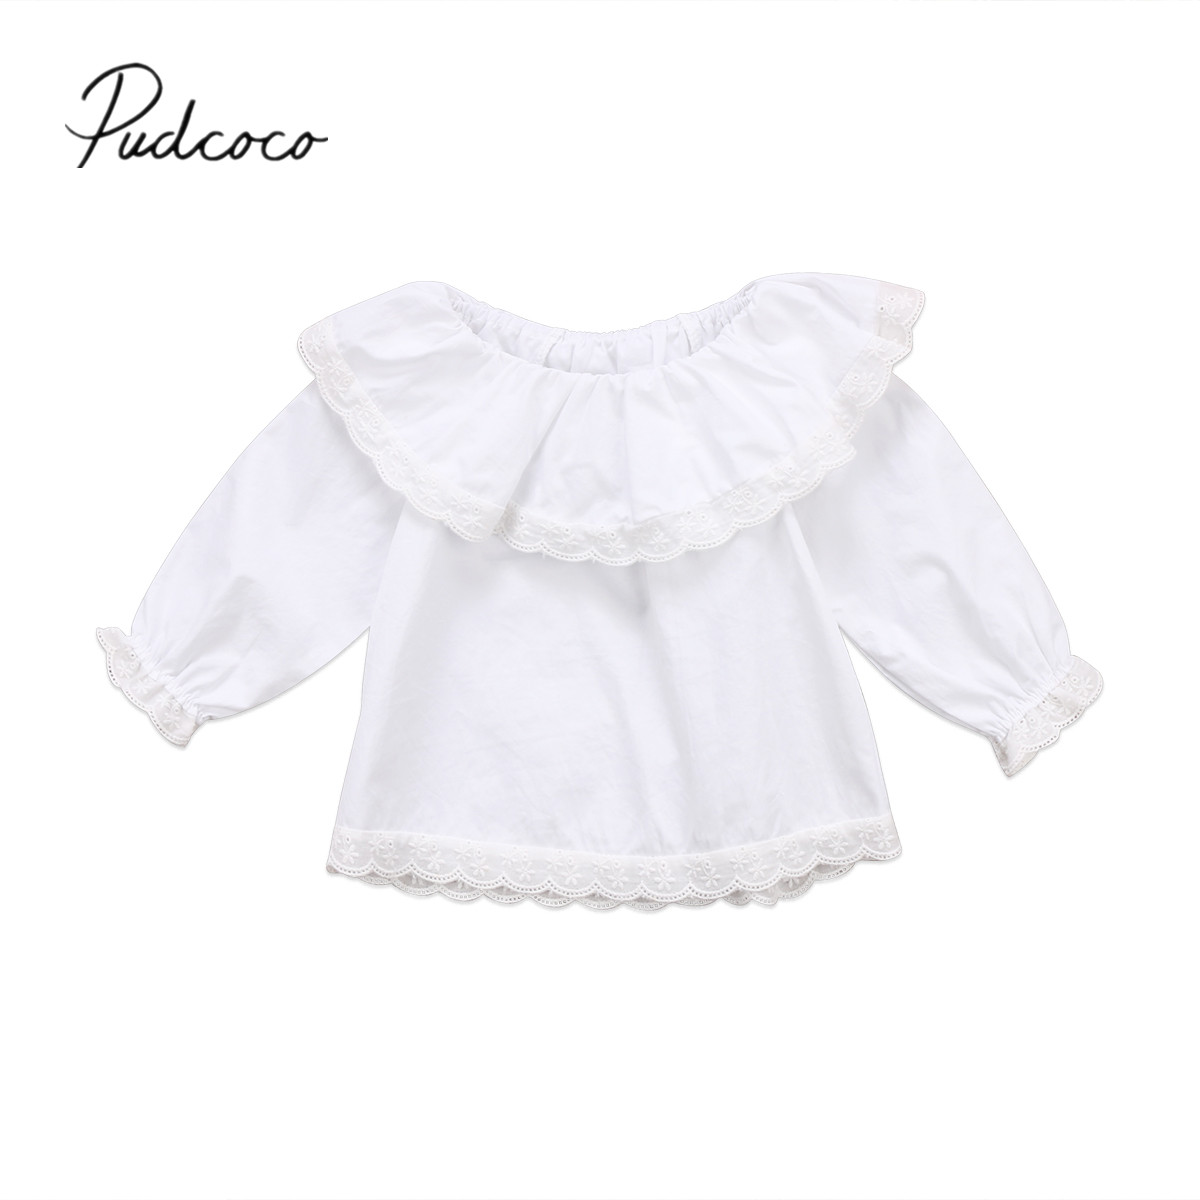 2017 Brand New Newborn Toddler Infant Baby Girls Lace Long Sleeve Tops T-shirts Clothes Solid White Sweet Tops Shirt 0-24M